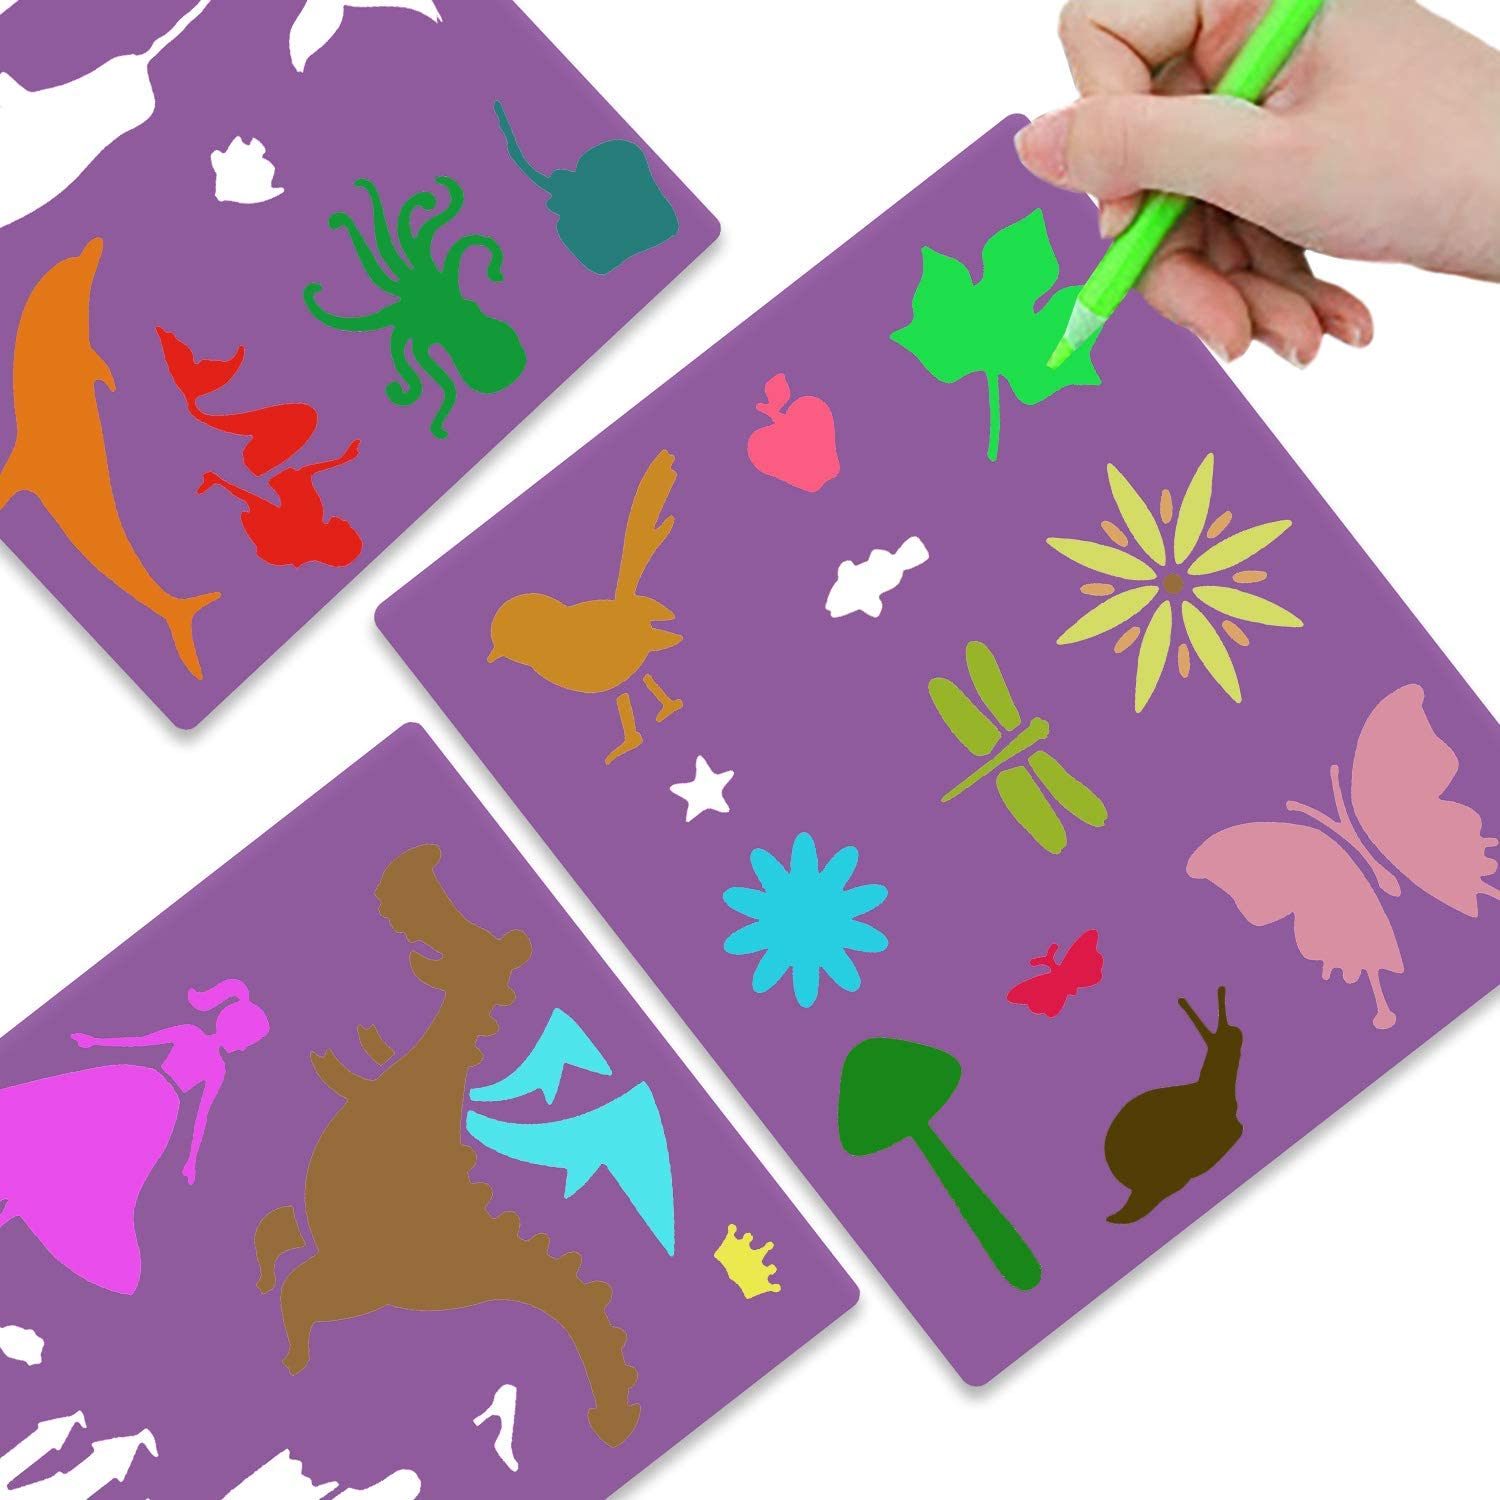 HOWAF Drawing Painting Stencils 14pcs Journal Stencils Set for Kids Crafts Reusable Letter Number Stencils Alphabet Graphics Animal Stencil for Journal Supplies DIY Scrapbooking Craft Accessories